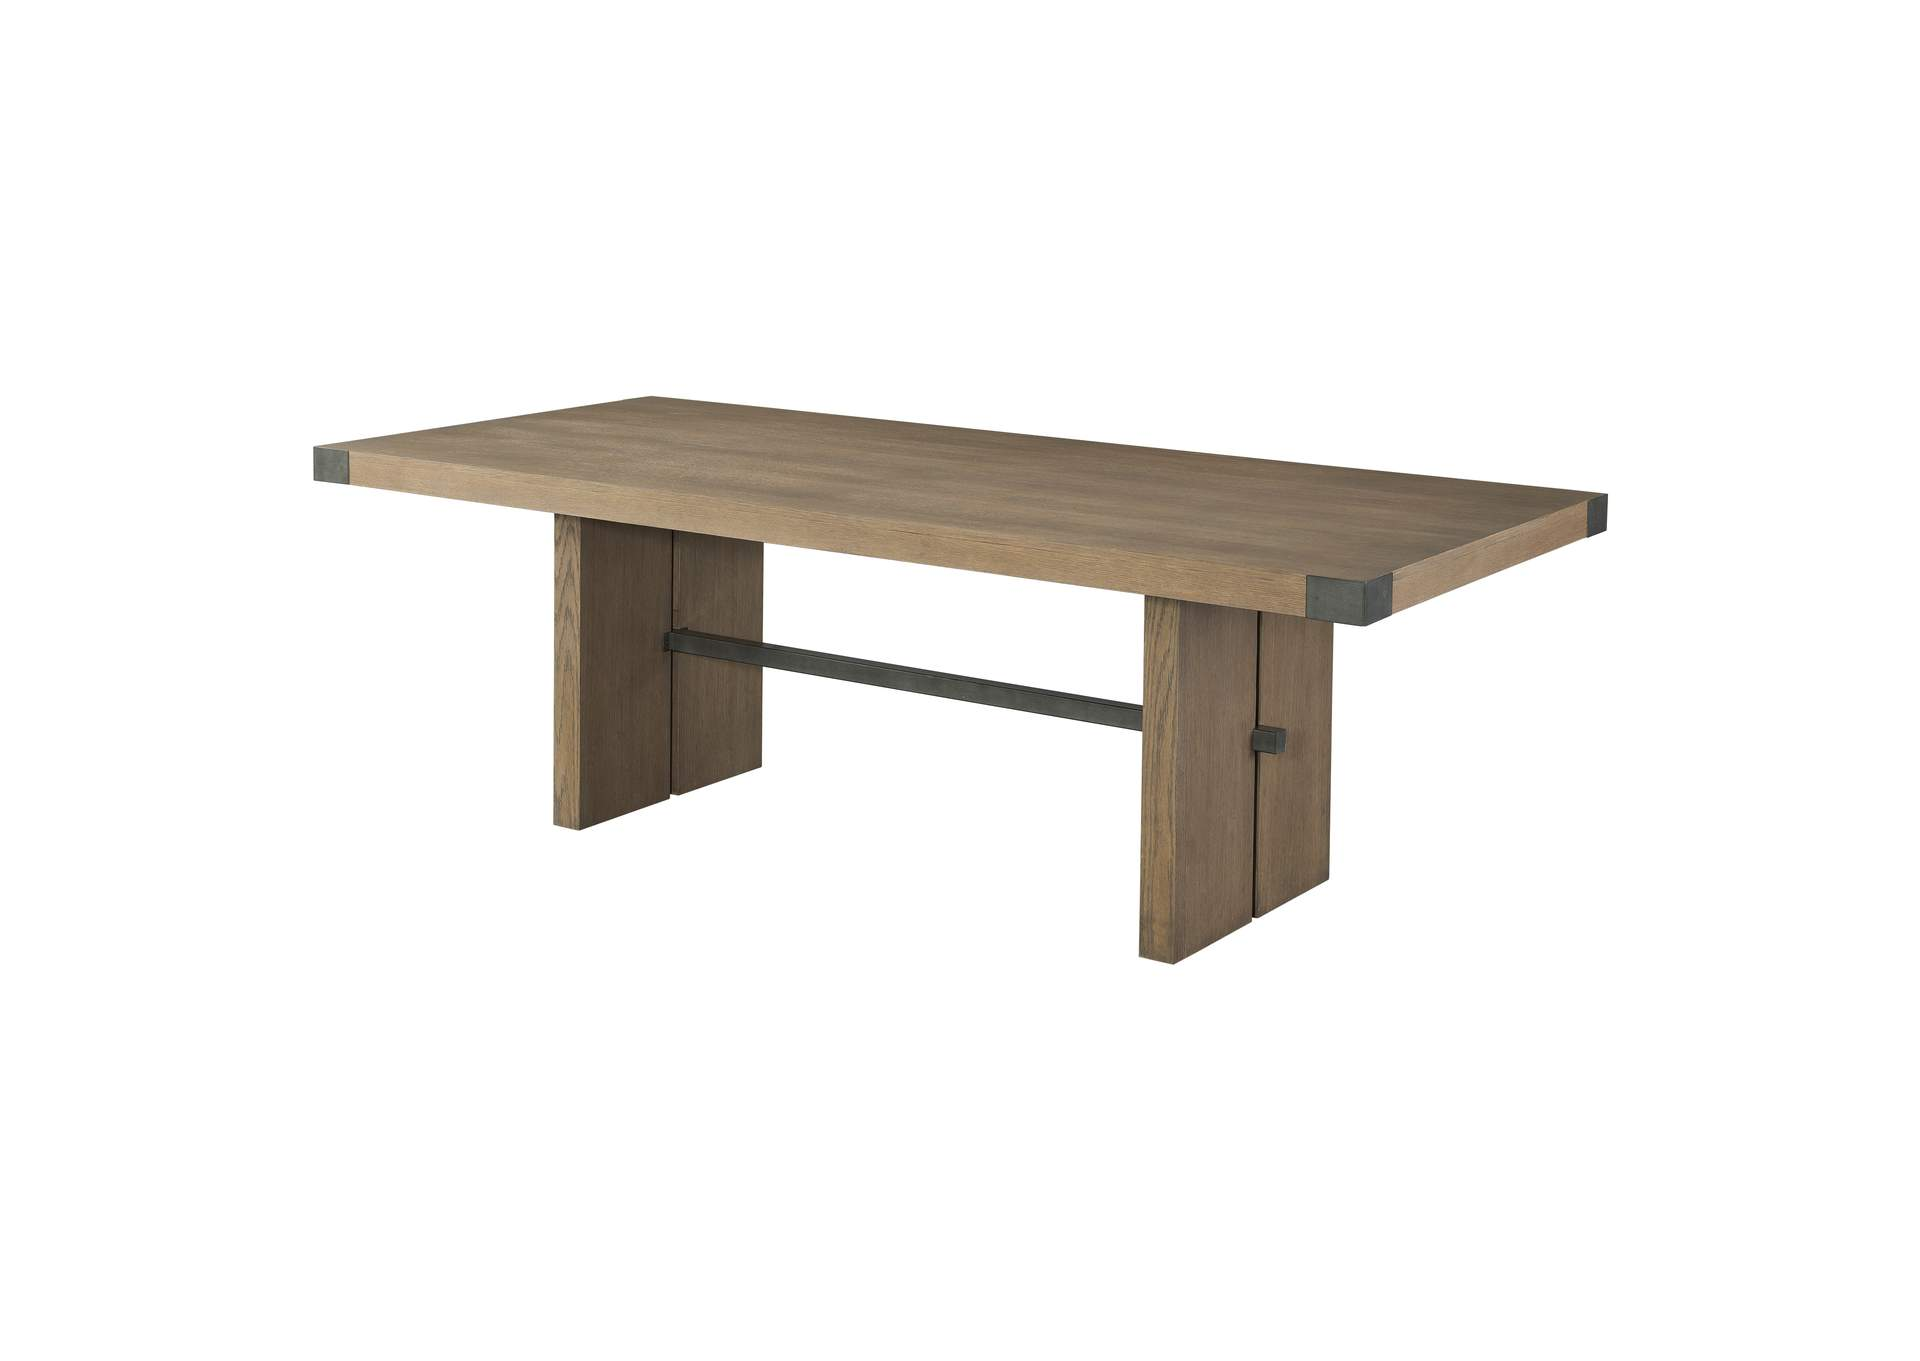 5054 Urban Swag Trestle Dining Table